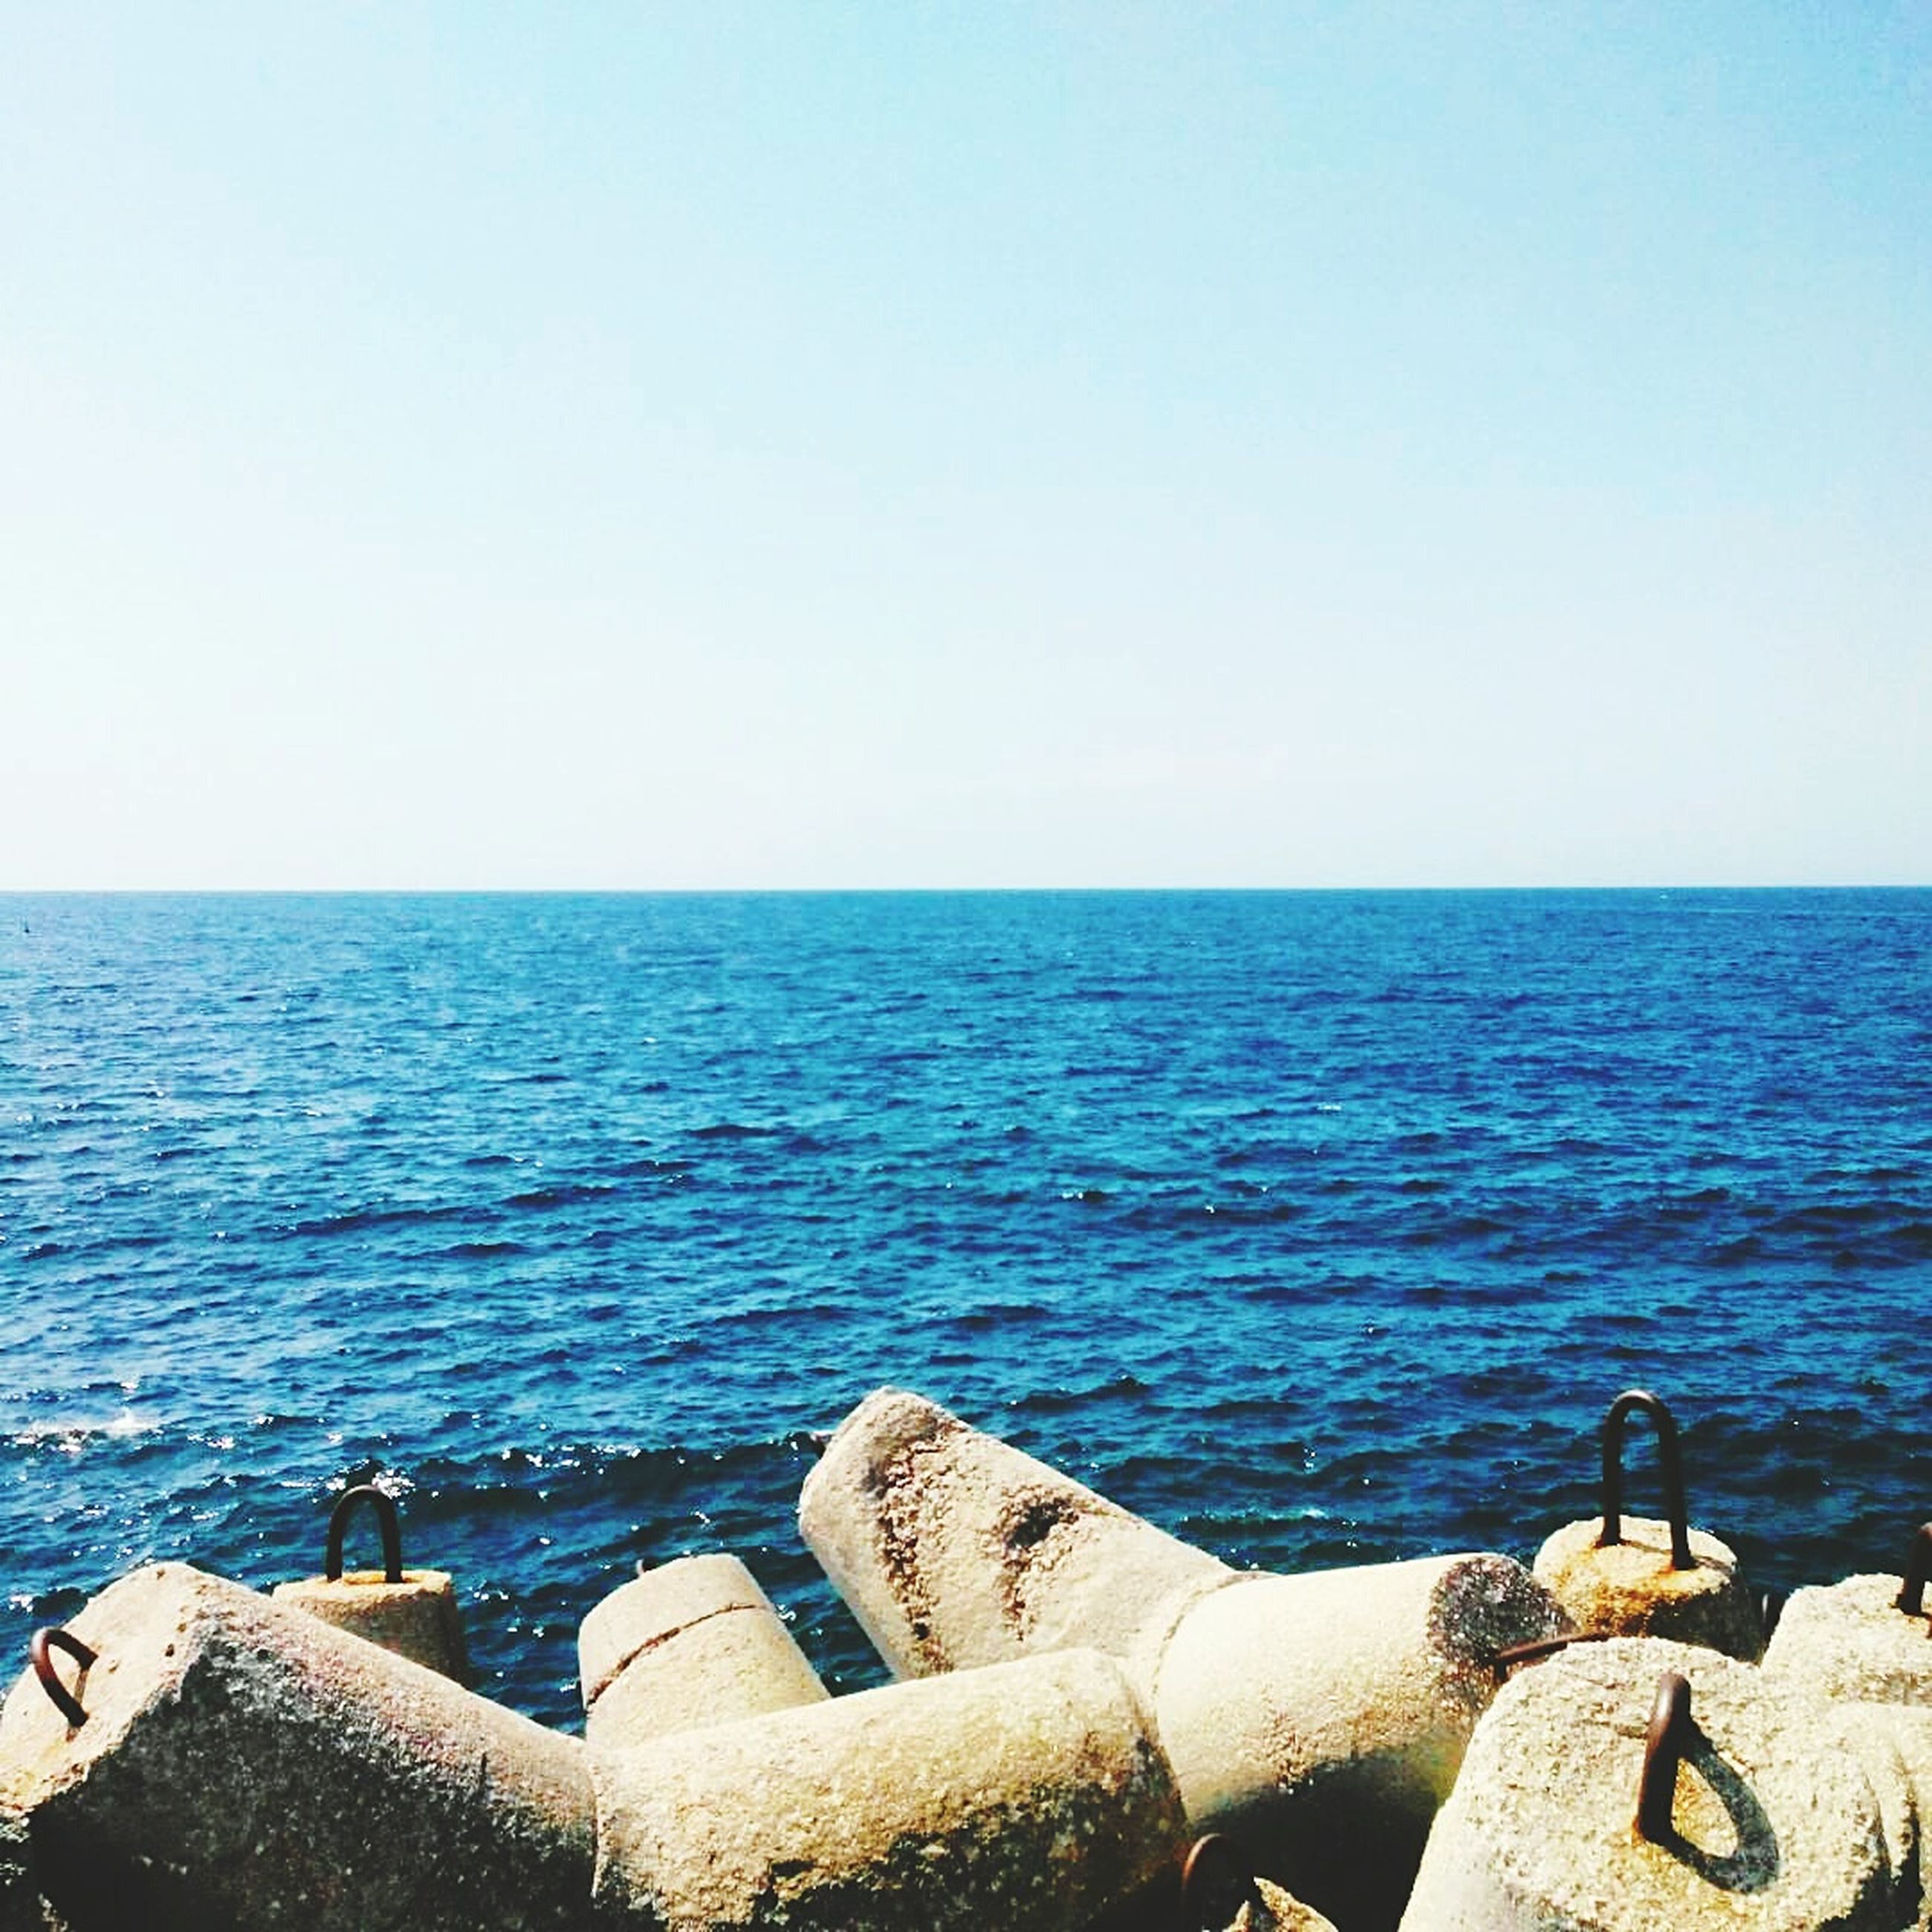 sea, water, clear sky, horizon over water, copy space, blue, tranquil scene, scenics, tranquility, beauty in nature, rippled, nature, seascape, built structure, idyllic, day, sunlight, outdoors, calm, ocean